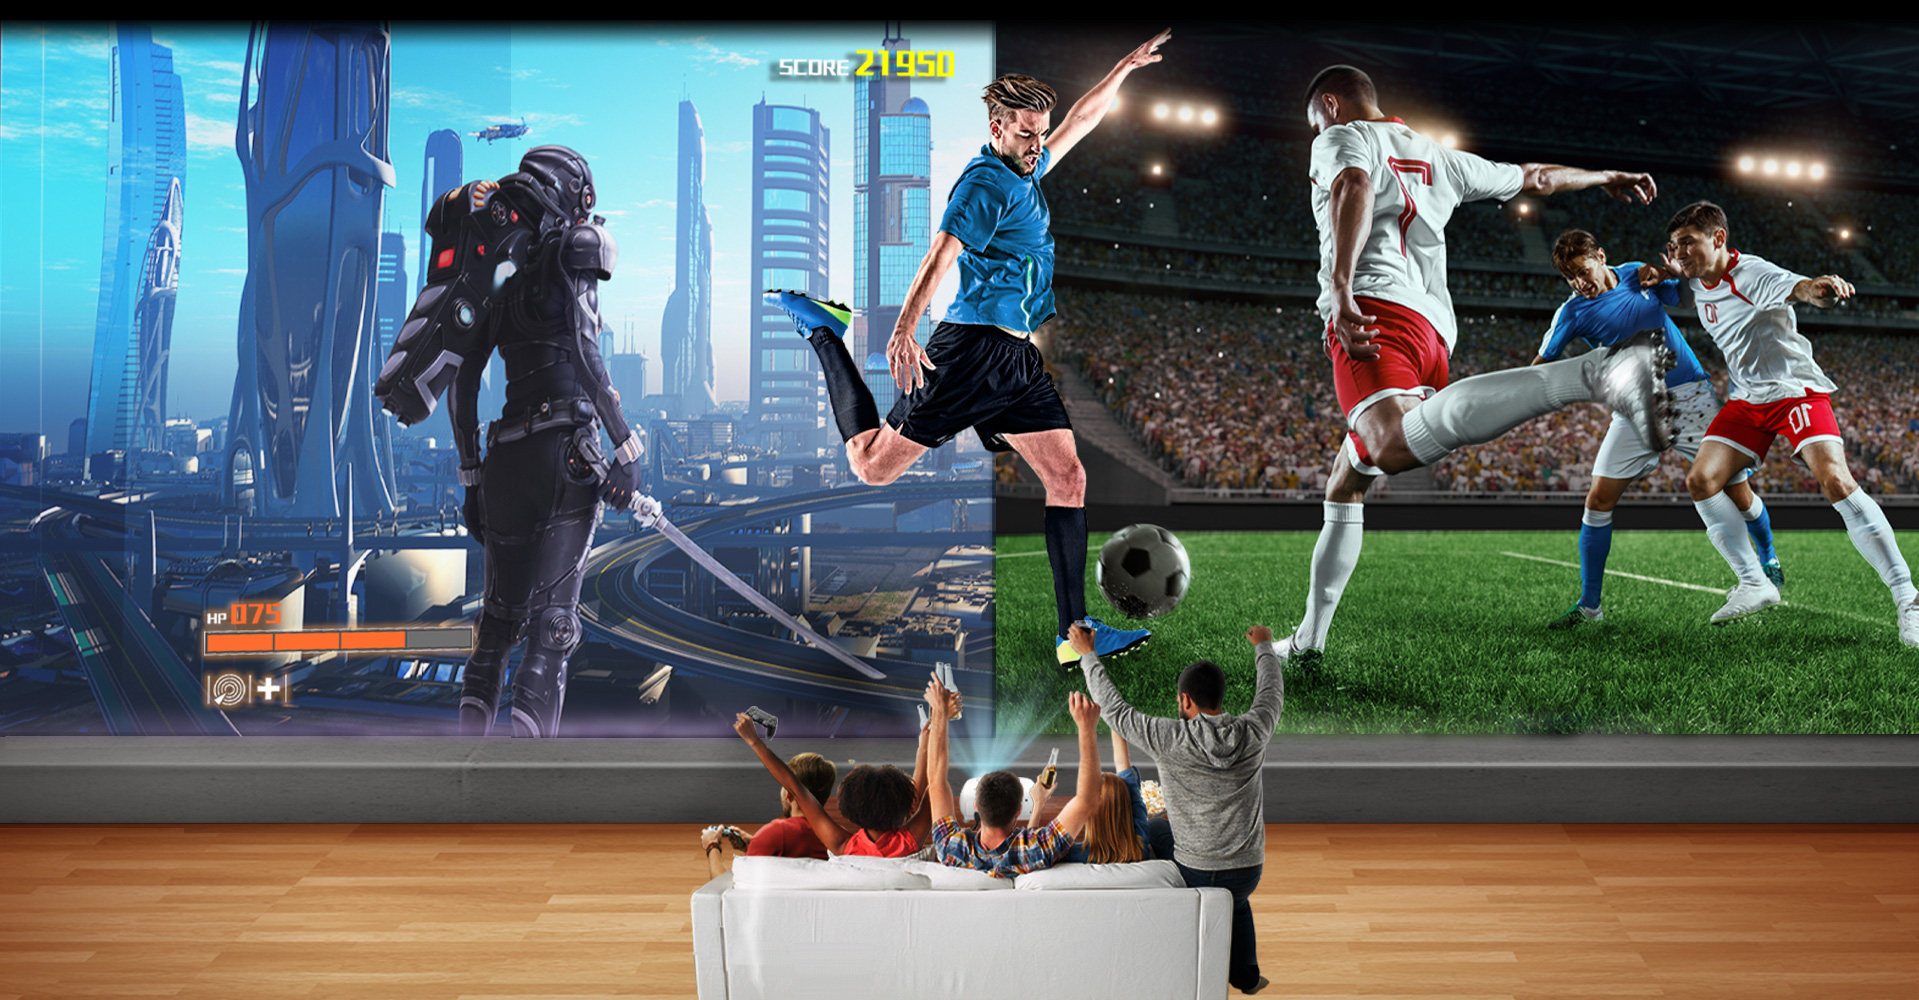 BenQ's 4K home projector for gaming and sports TK800M provides immersive sports watching experience.